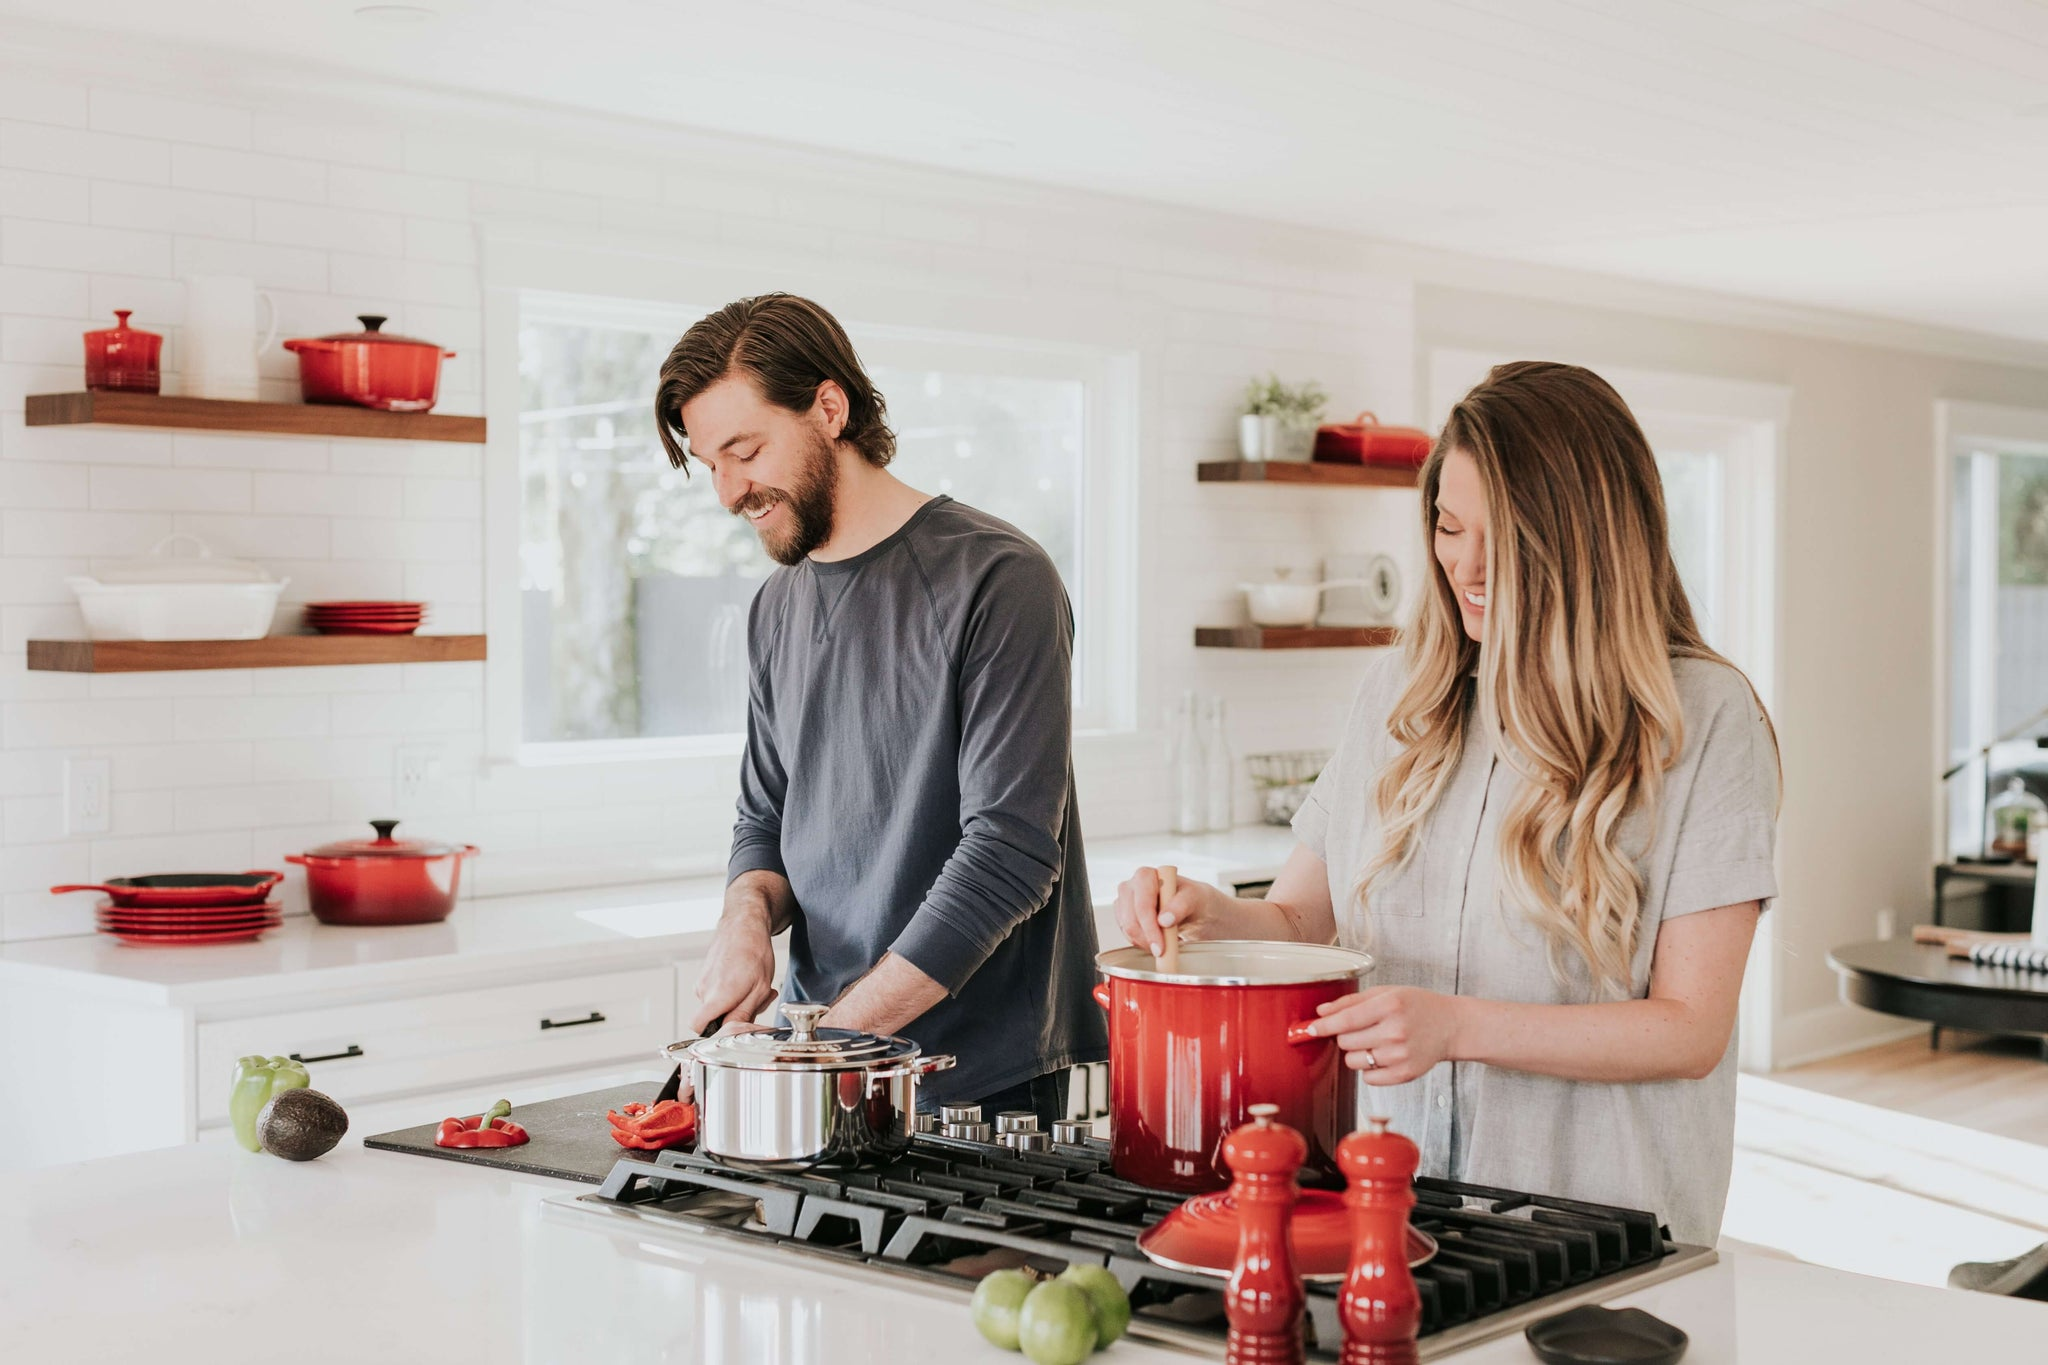 Couples in the kitchen